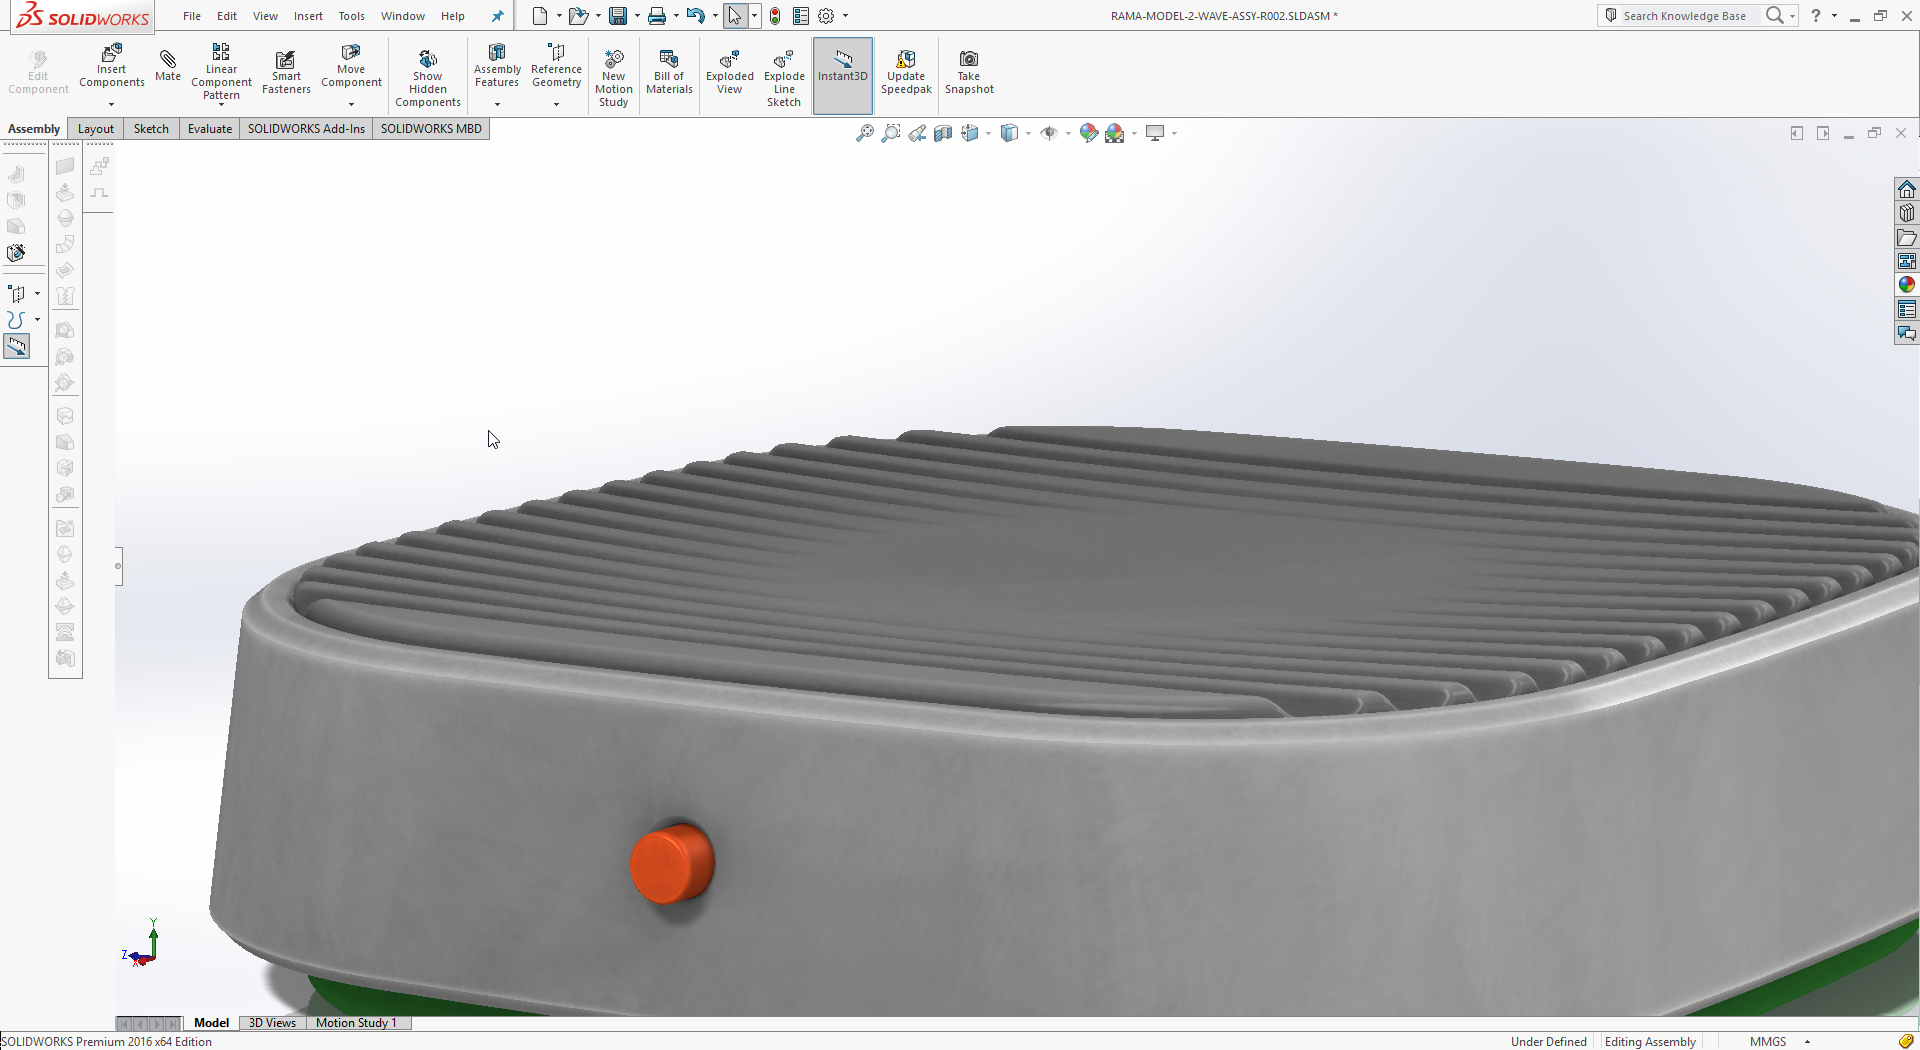 SOLIDWORKS_Premium_2016_x64_Edition_-_[RAMA-MODEL-_2015-11-08_17-09-49.png